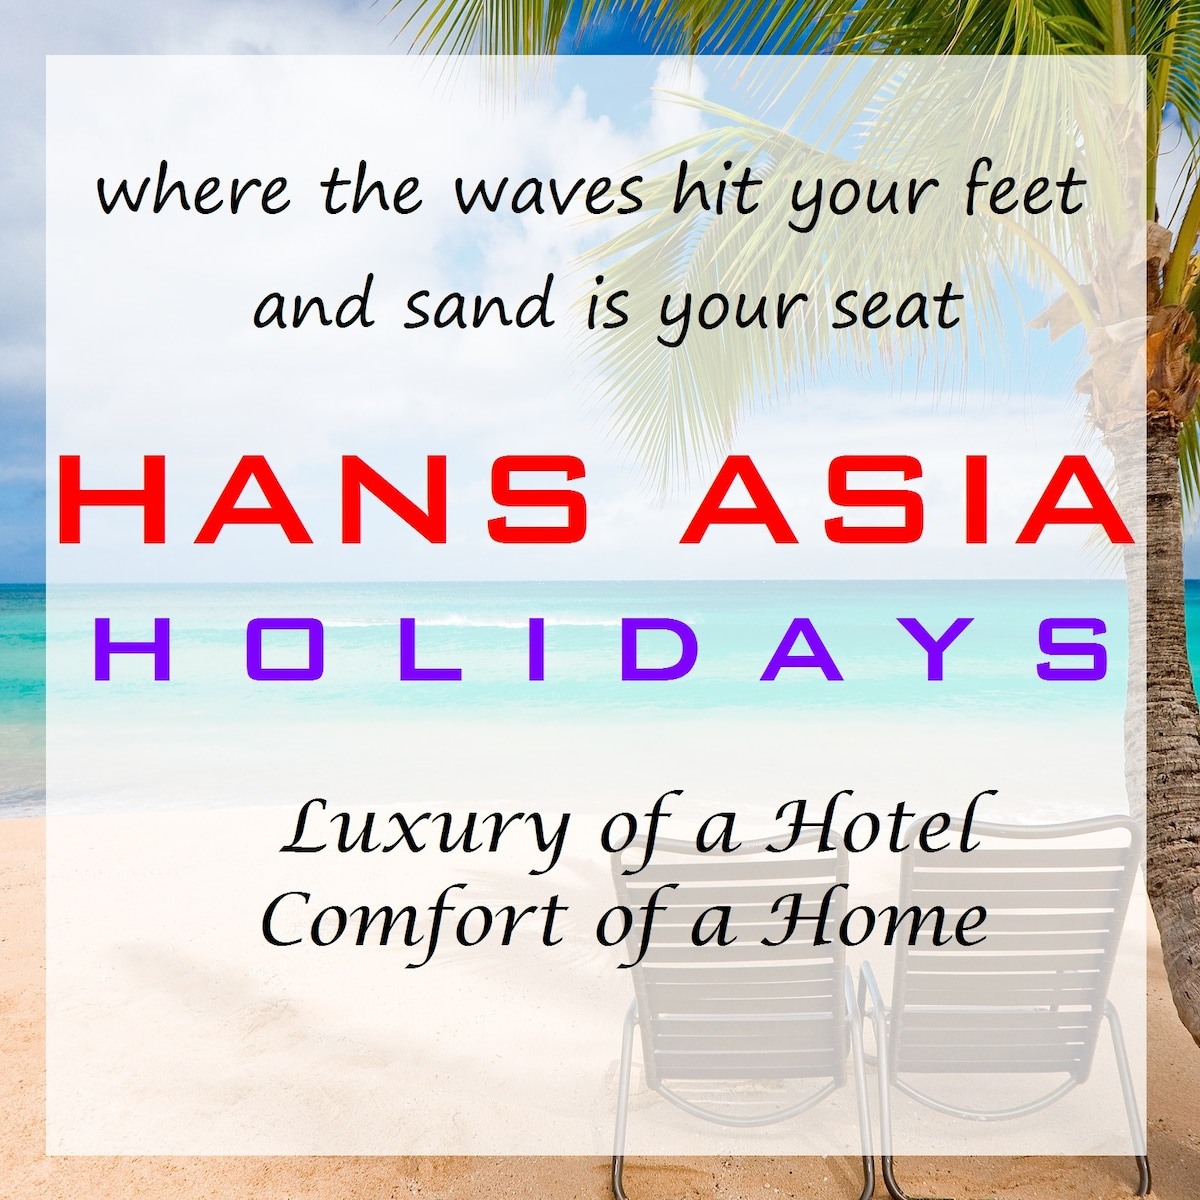 Charming and relaxing is exactly what Hans Asia h